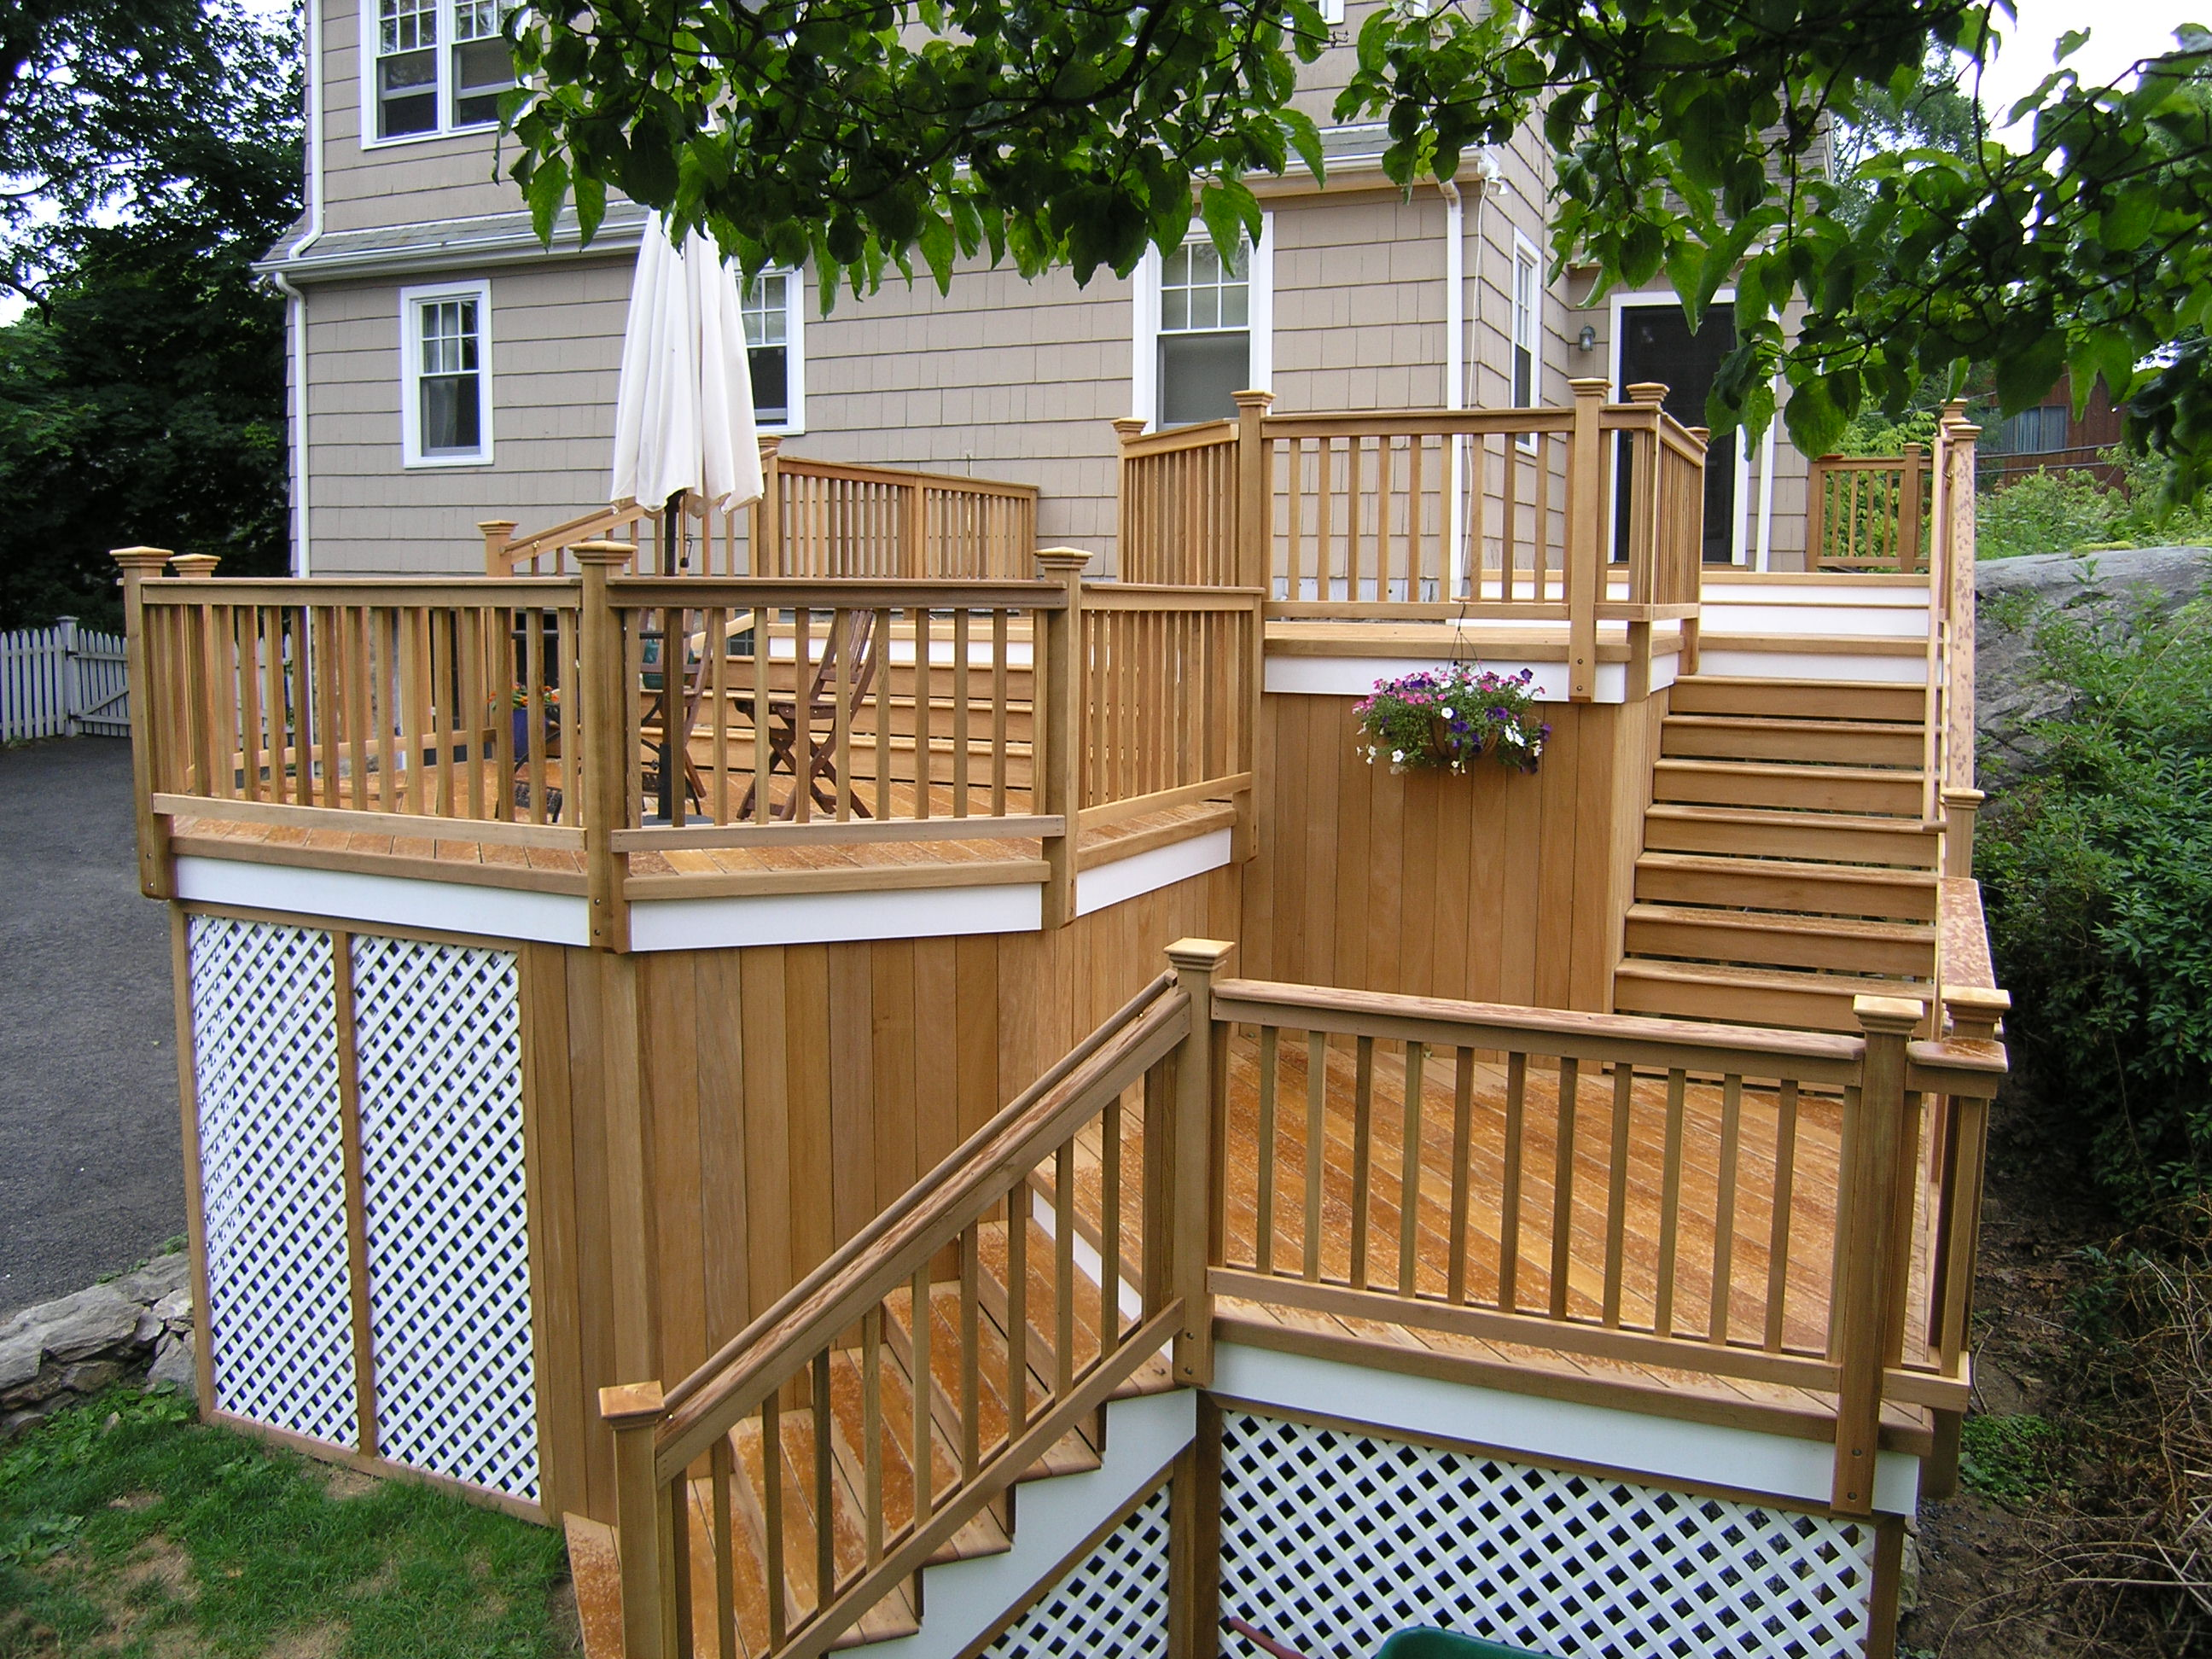 cos cob natural wood deck completed custom decks of fairfield county connecticut westchester. Black Bedroom Furniture Sets. Home Design Ideas